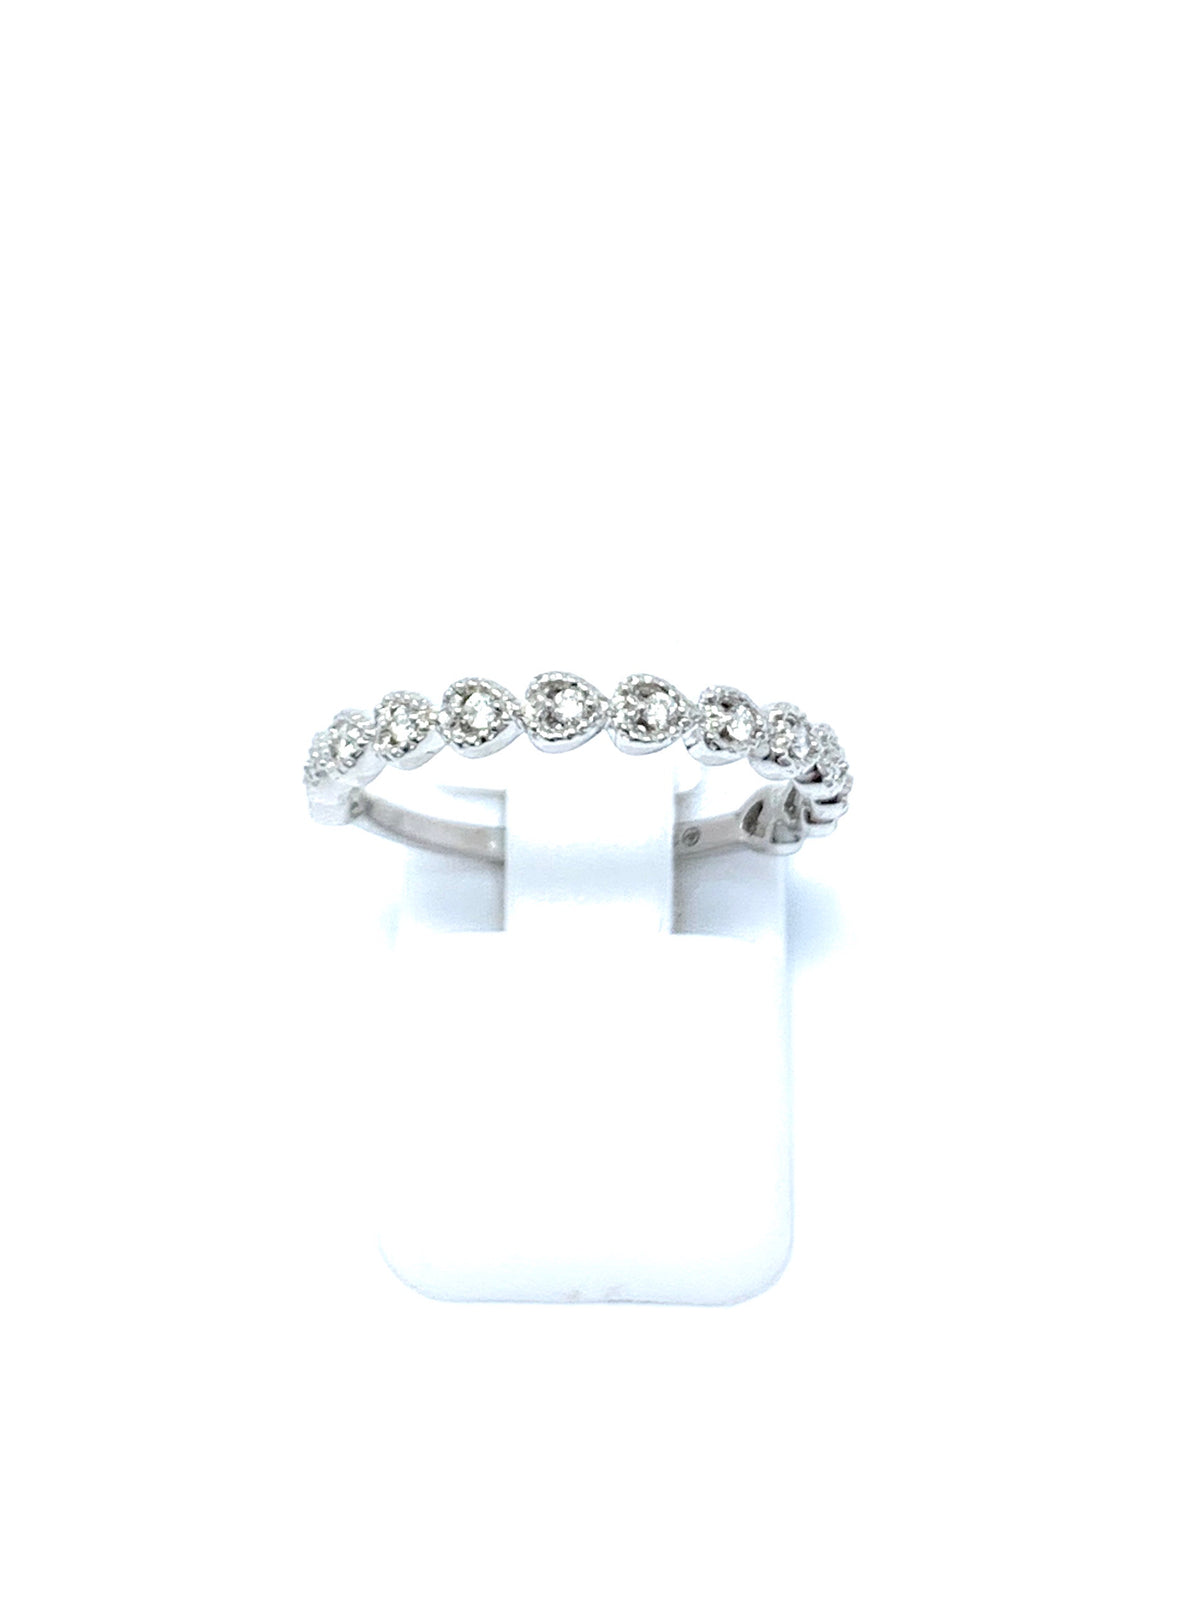 White Gold Heart and Diamond Ring